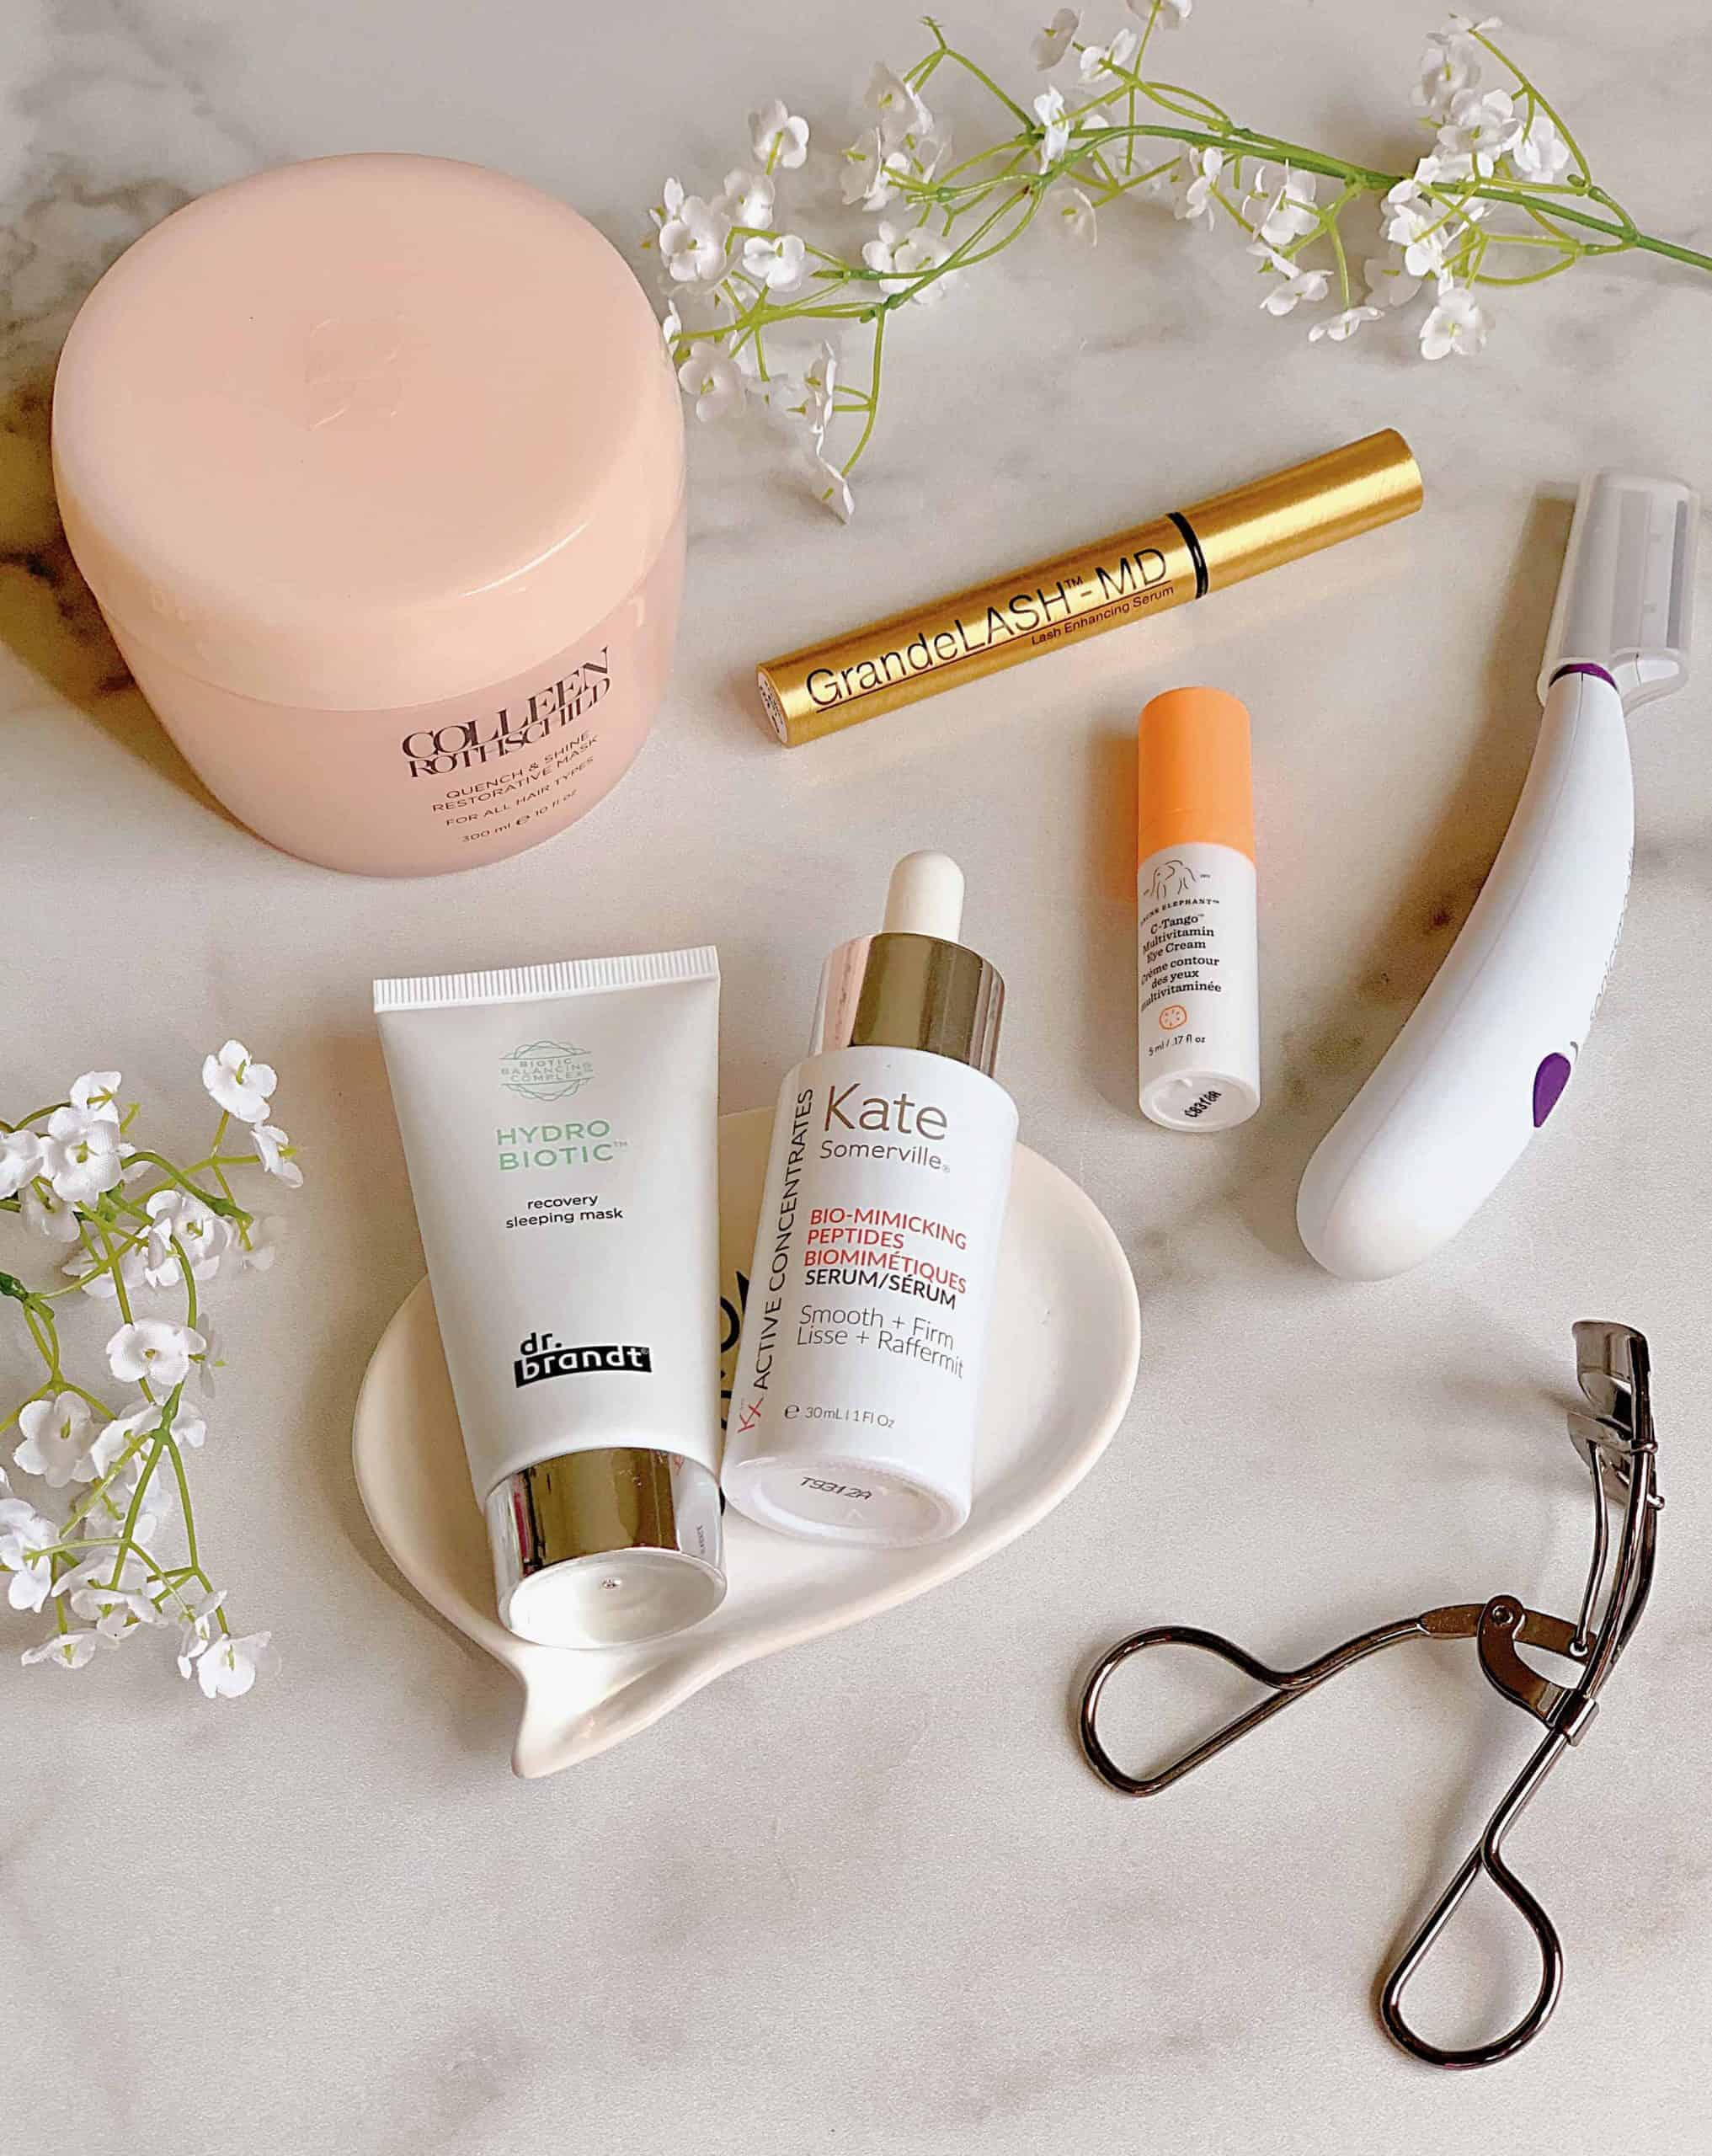 Check out my 8 Favorite Beauty Products that are worth the splurge! These skincare, hair, and beauty products are worth every penny! #beautyfavorites #beautysplurge